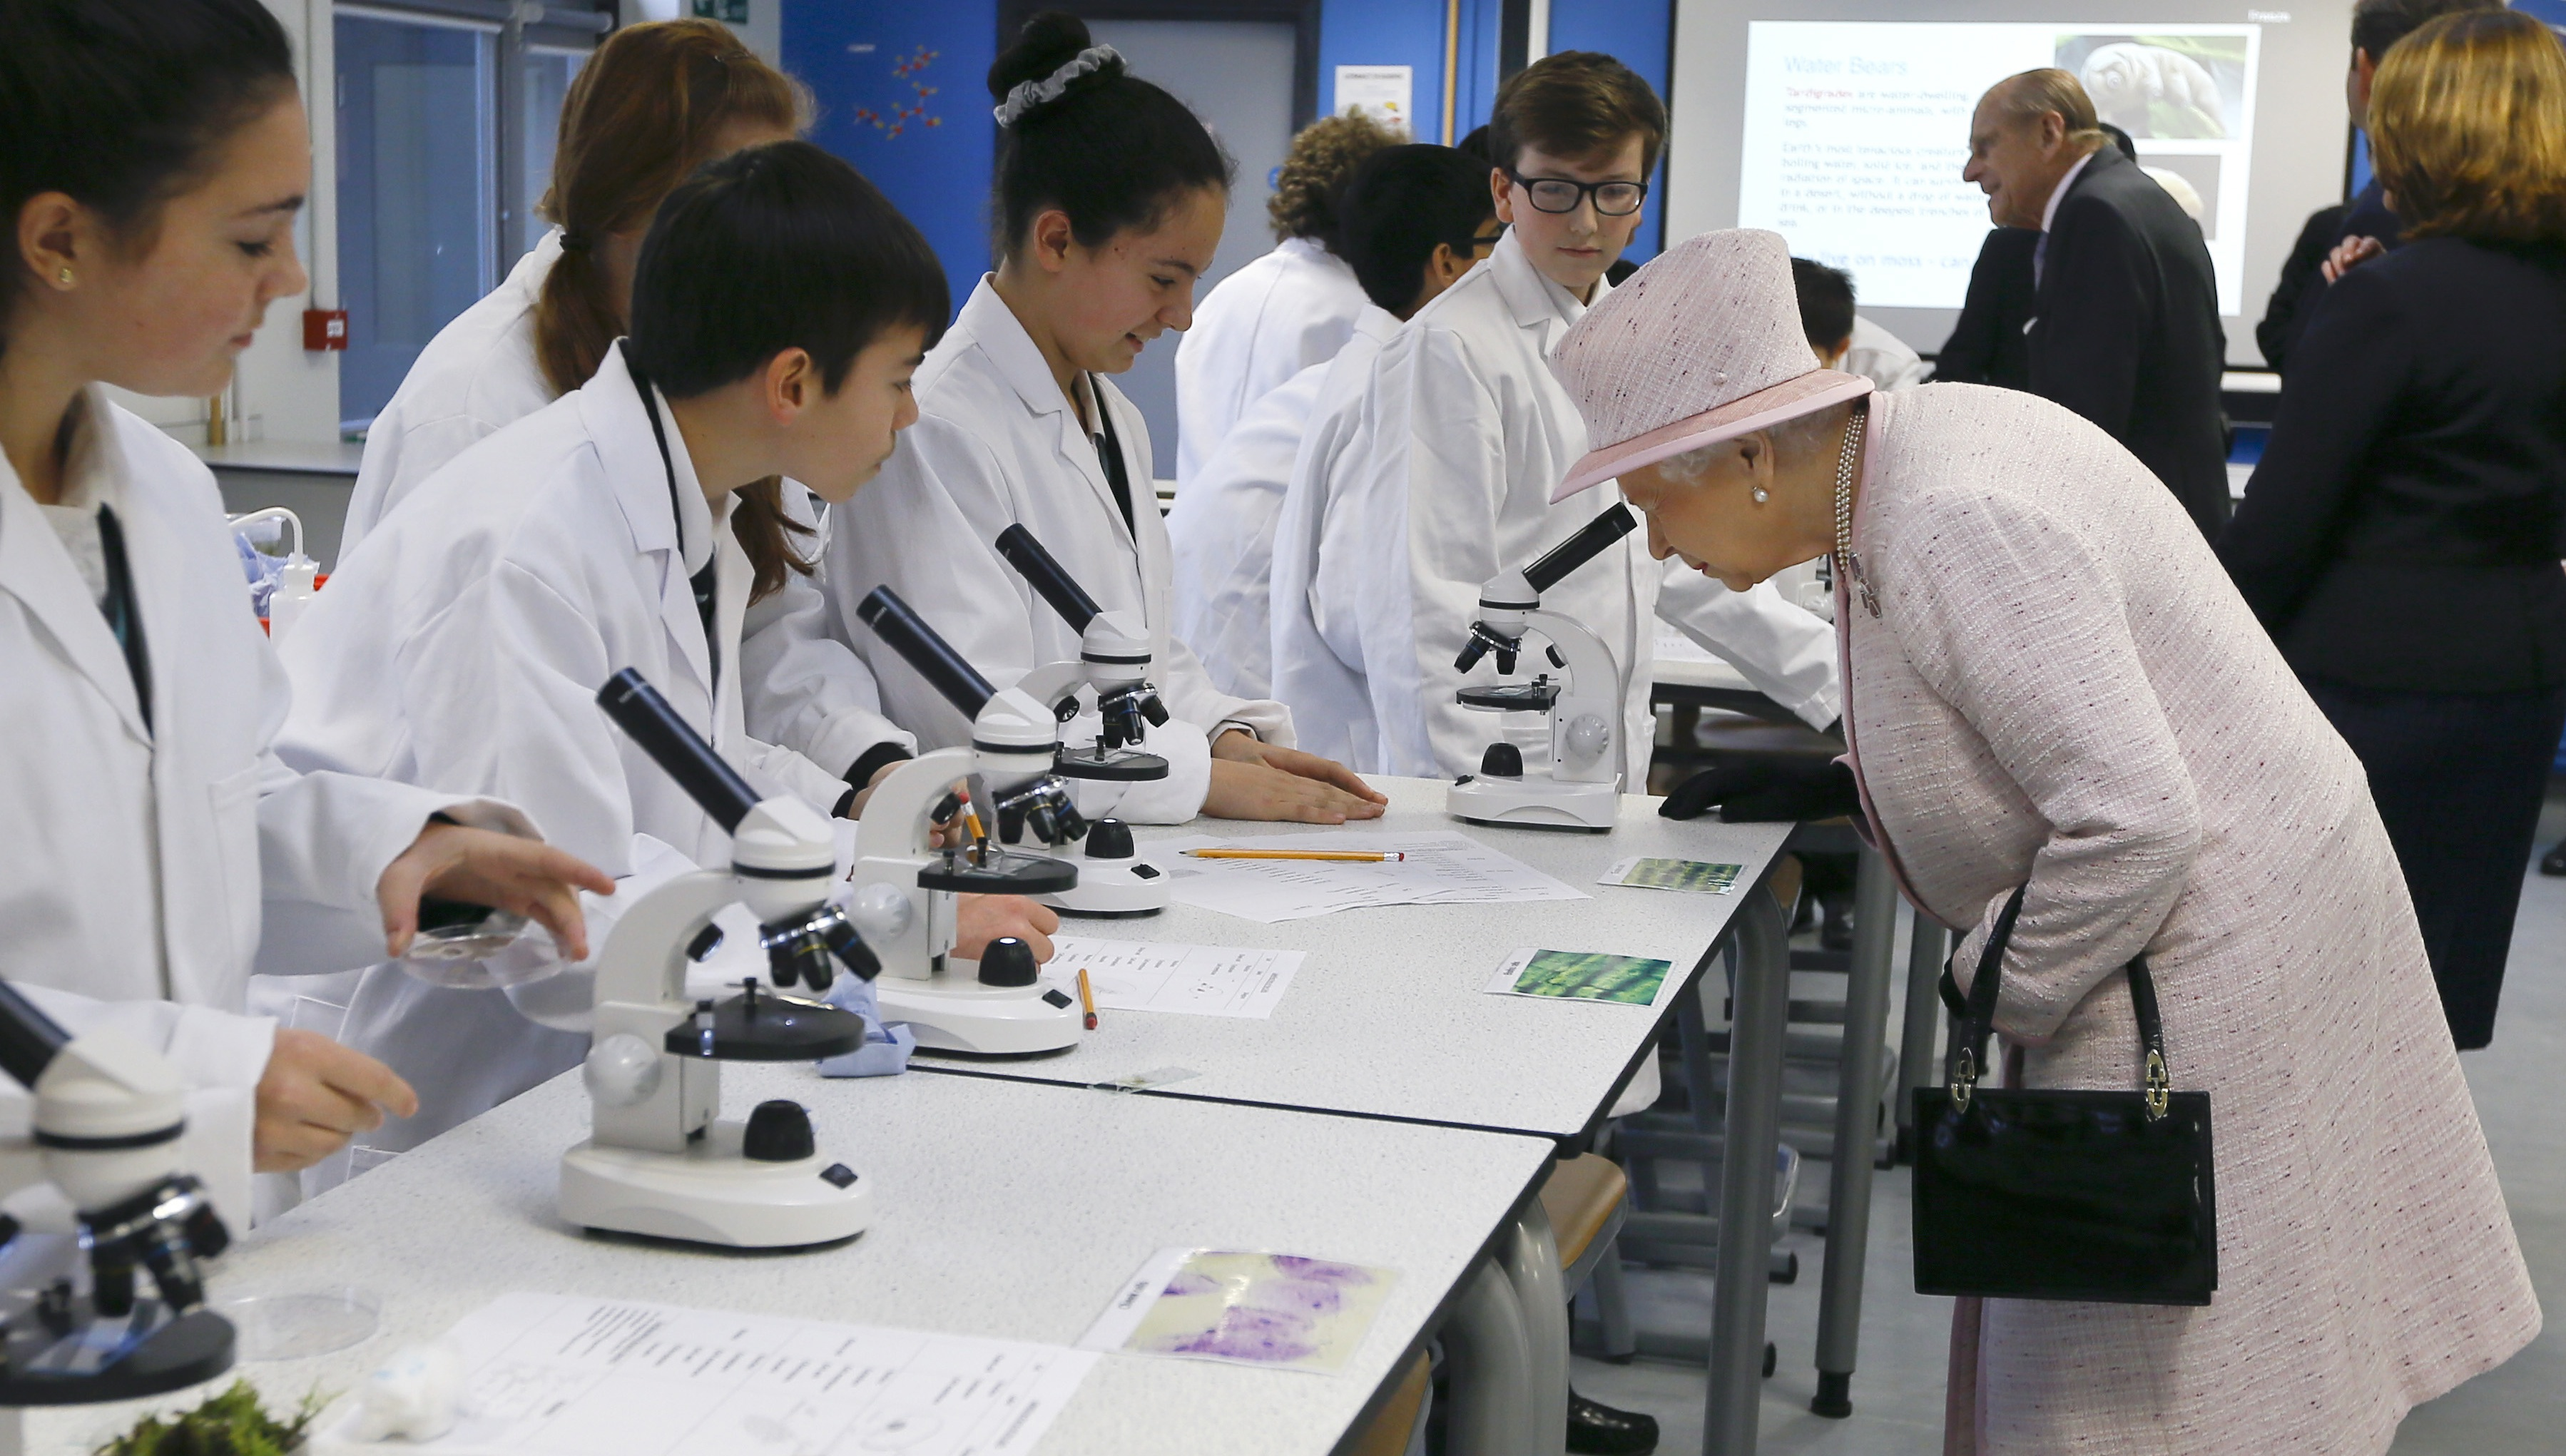 Britain's Queen Elizabeth II looks through a microscope as she tours a science lesson, during a visit to Holyport College near Maidenhead, Berkshire in England, Friday, Nov. 28, 2014. Holyport College is an all-ability, co-educational day and boarding school for students aged 11 to 19 years and is a state-funded 'free school,' which opened in Sept. 2014. (AP Photo/Kirsty Wigglesworth, Pool)